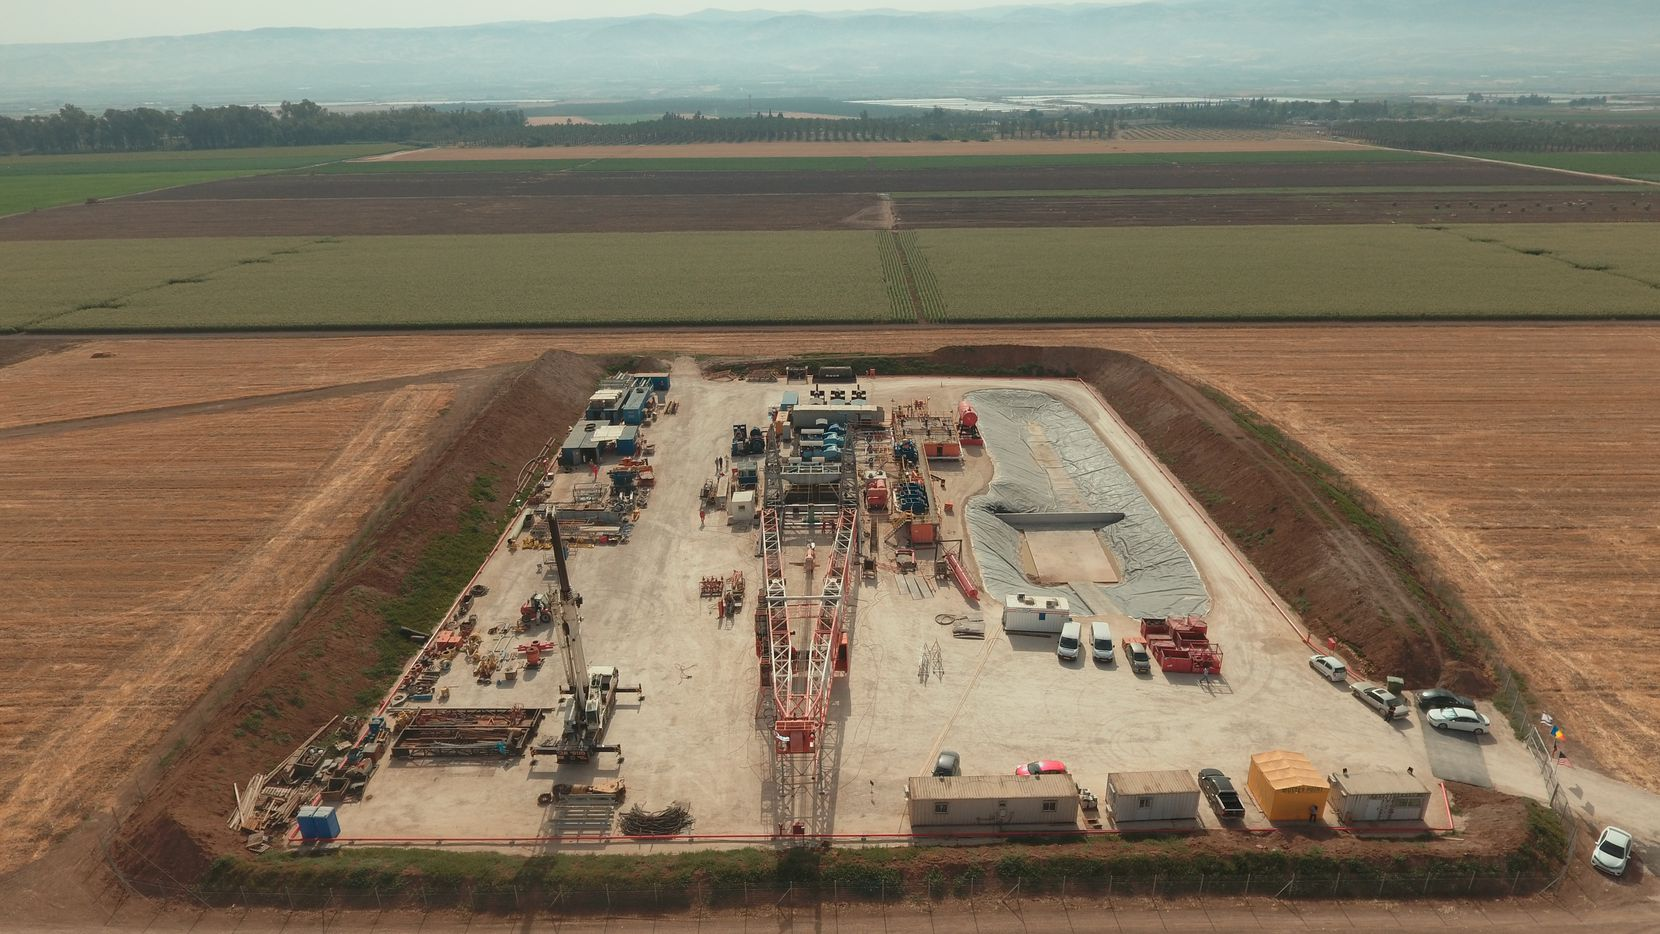 Zion's drilling site in Megiddo-Jezreel Valley in May